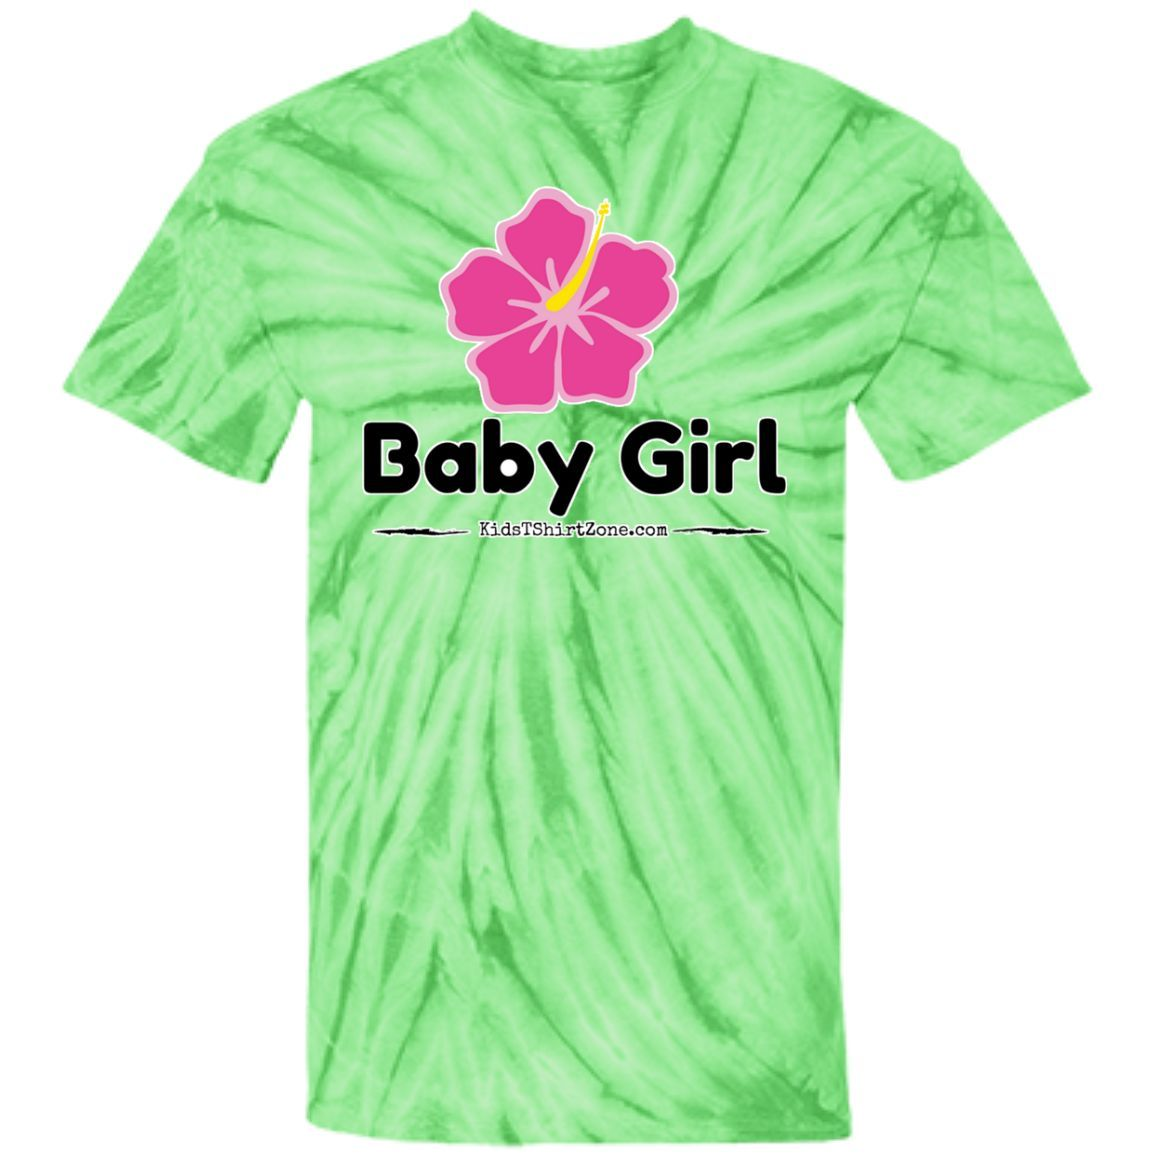 Youth Tie Dye T-shirt - Baby Girl pink flower